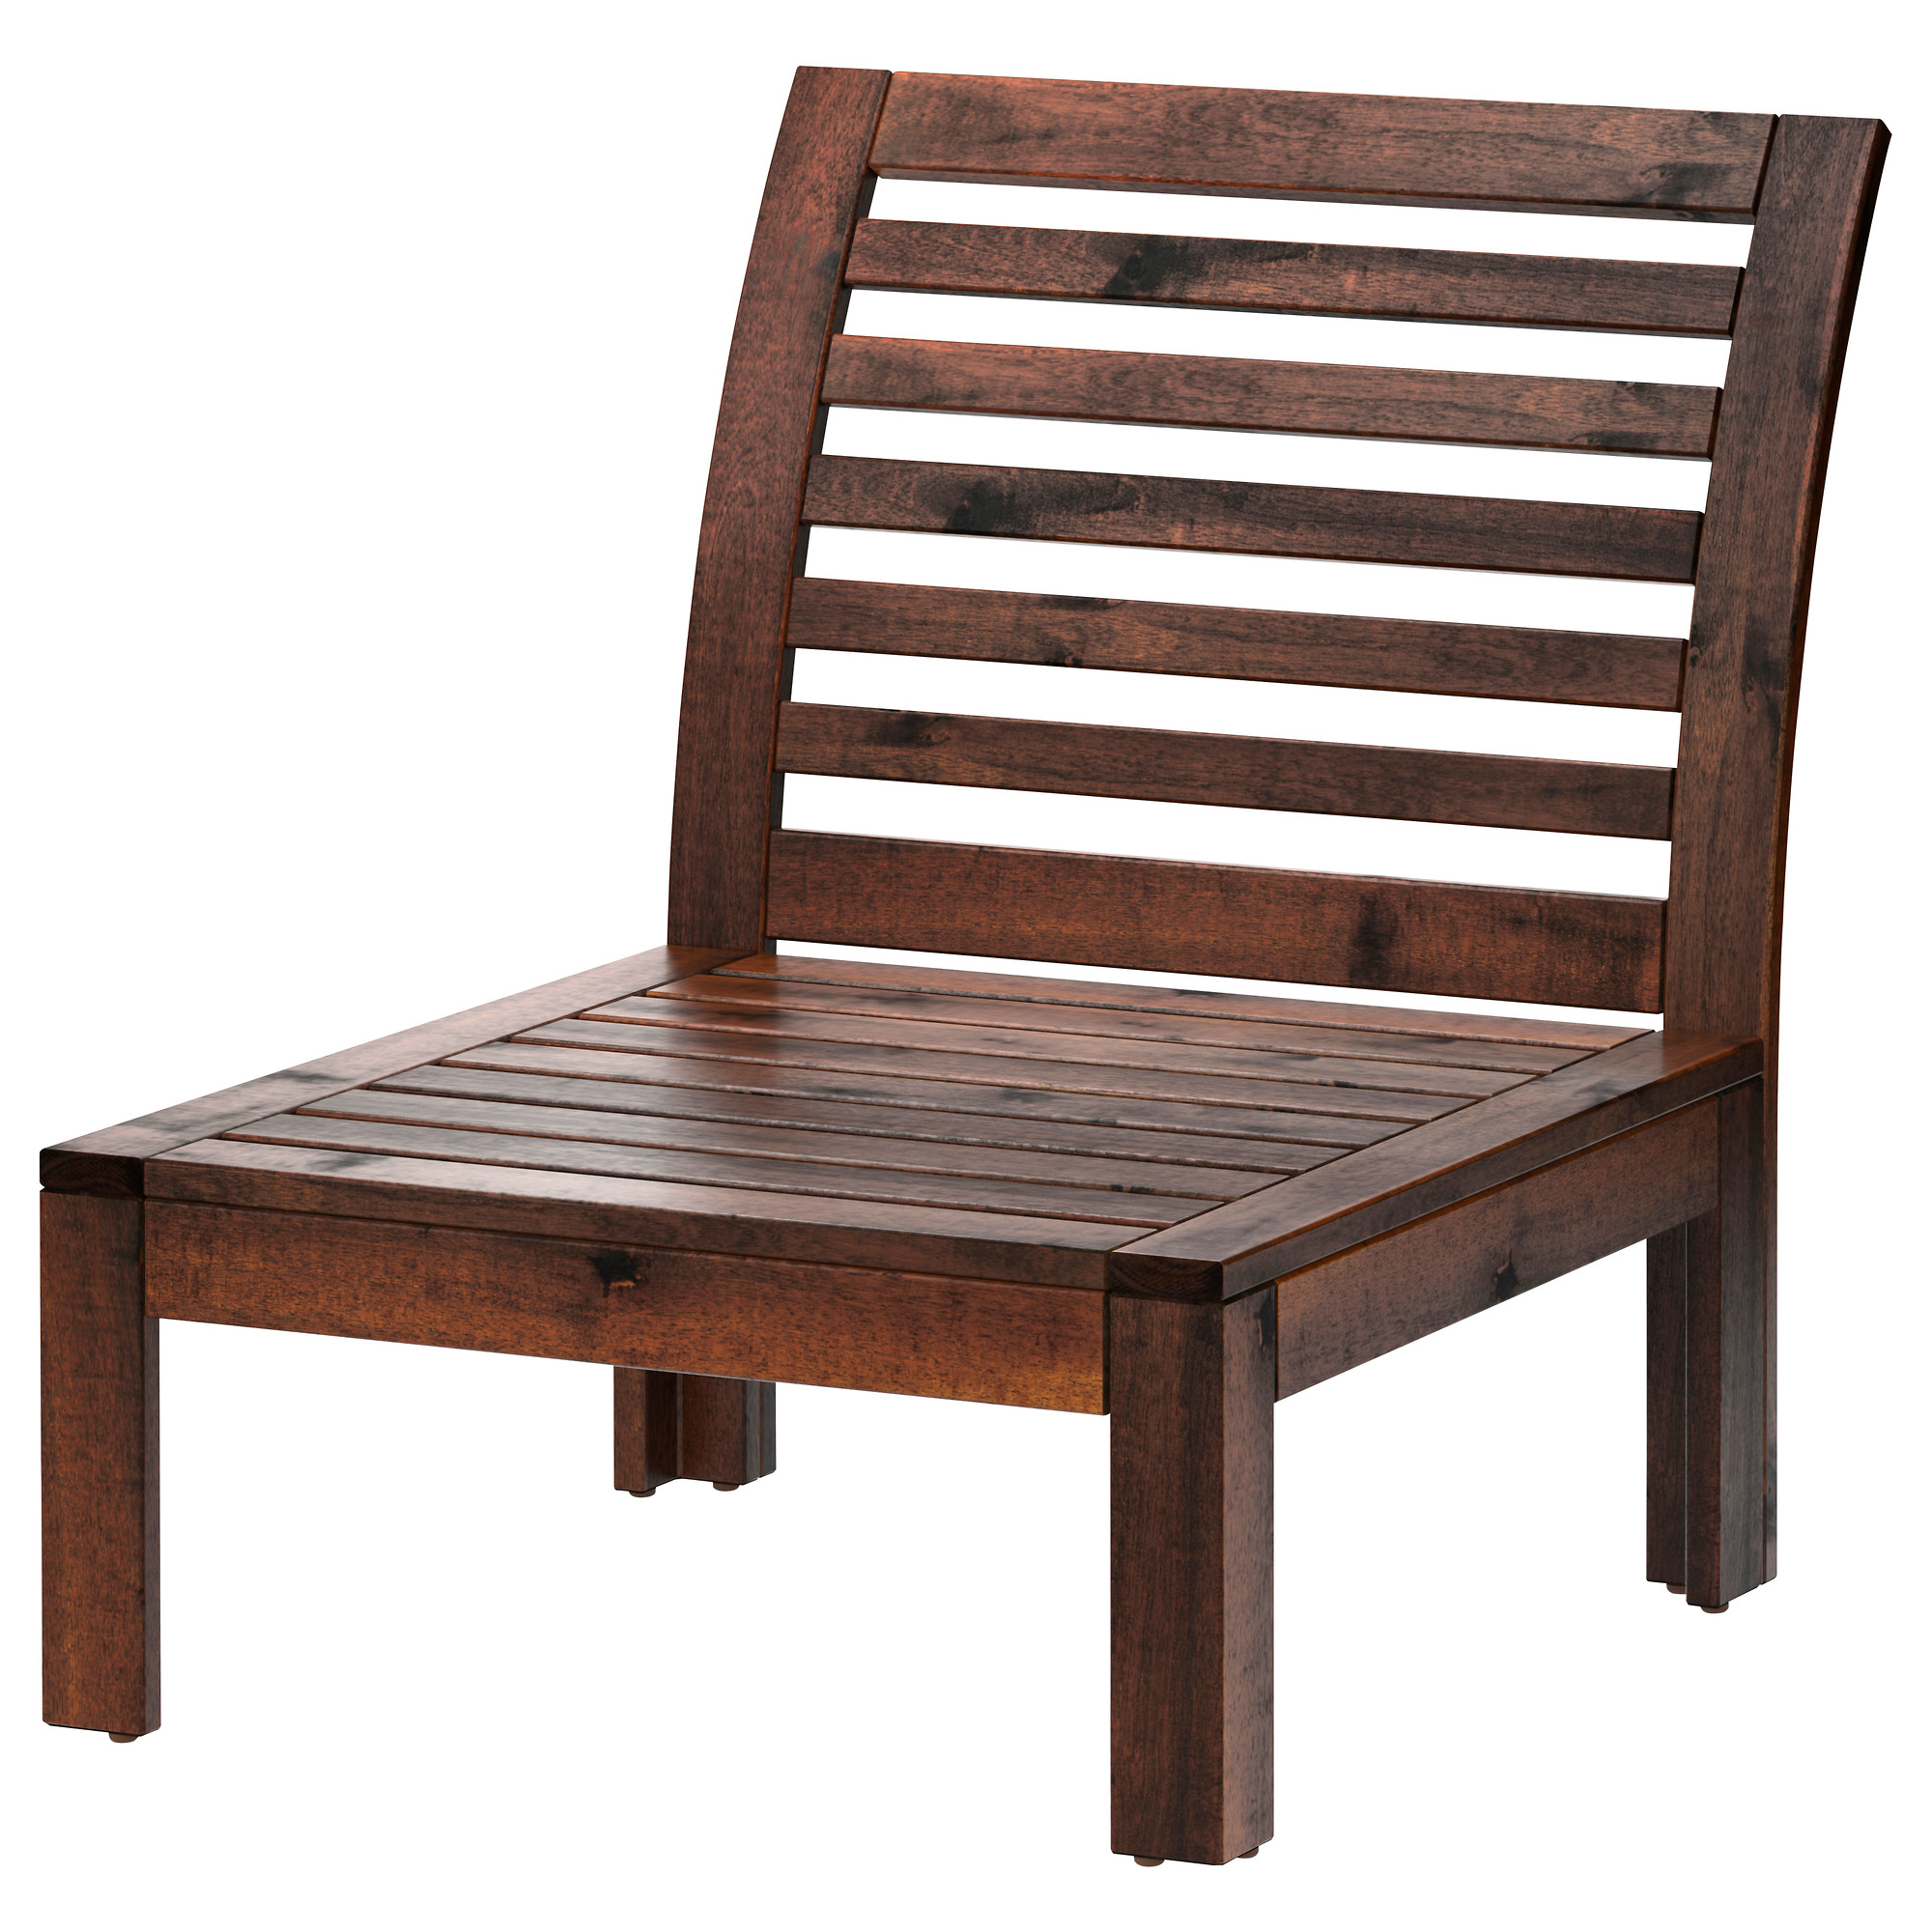 Applaro One Seat Section Outdoor Brown Stained Ikea Hong Kong And Macau